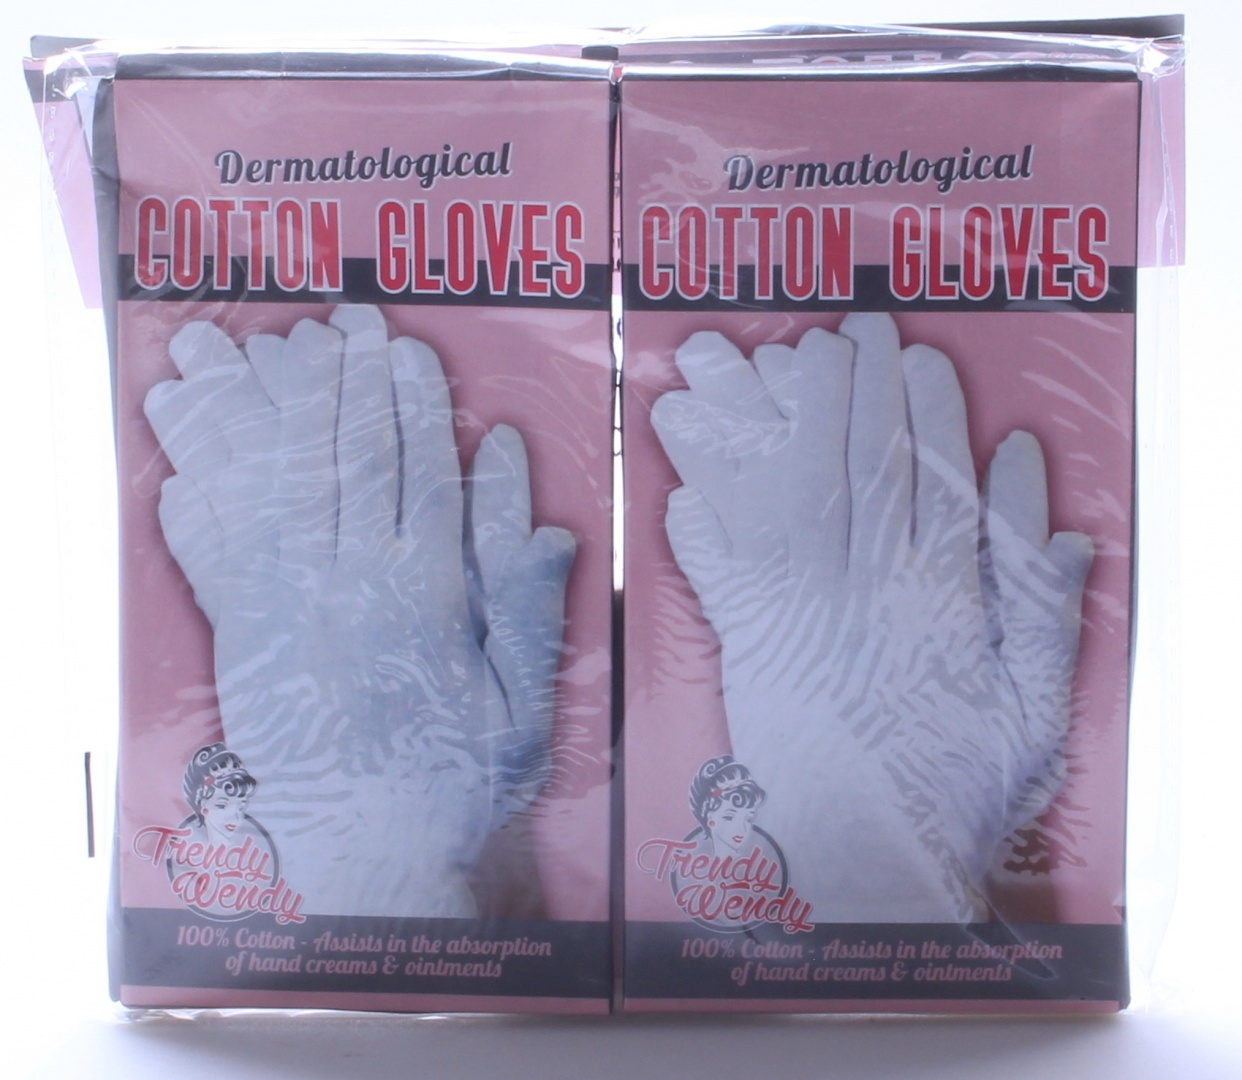 New 2 Pairs Dermatological Cotton Gloves Cream Absorbtion Eczema Dry